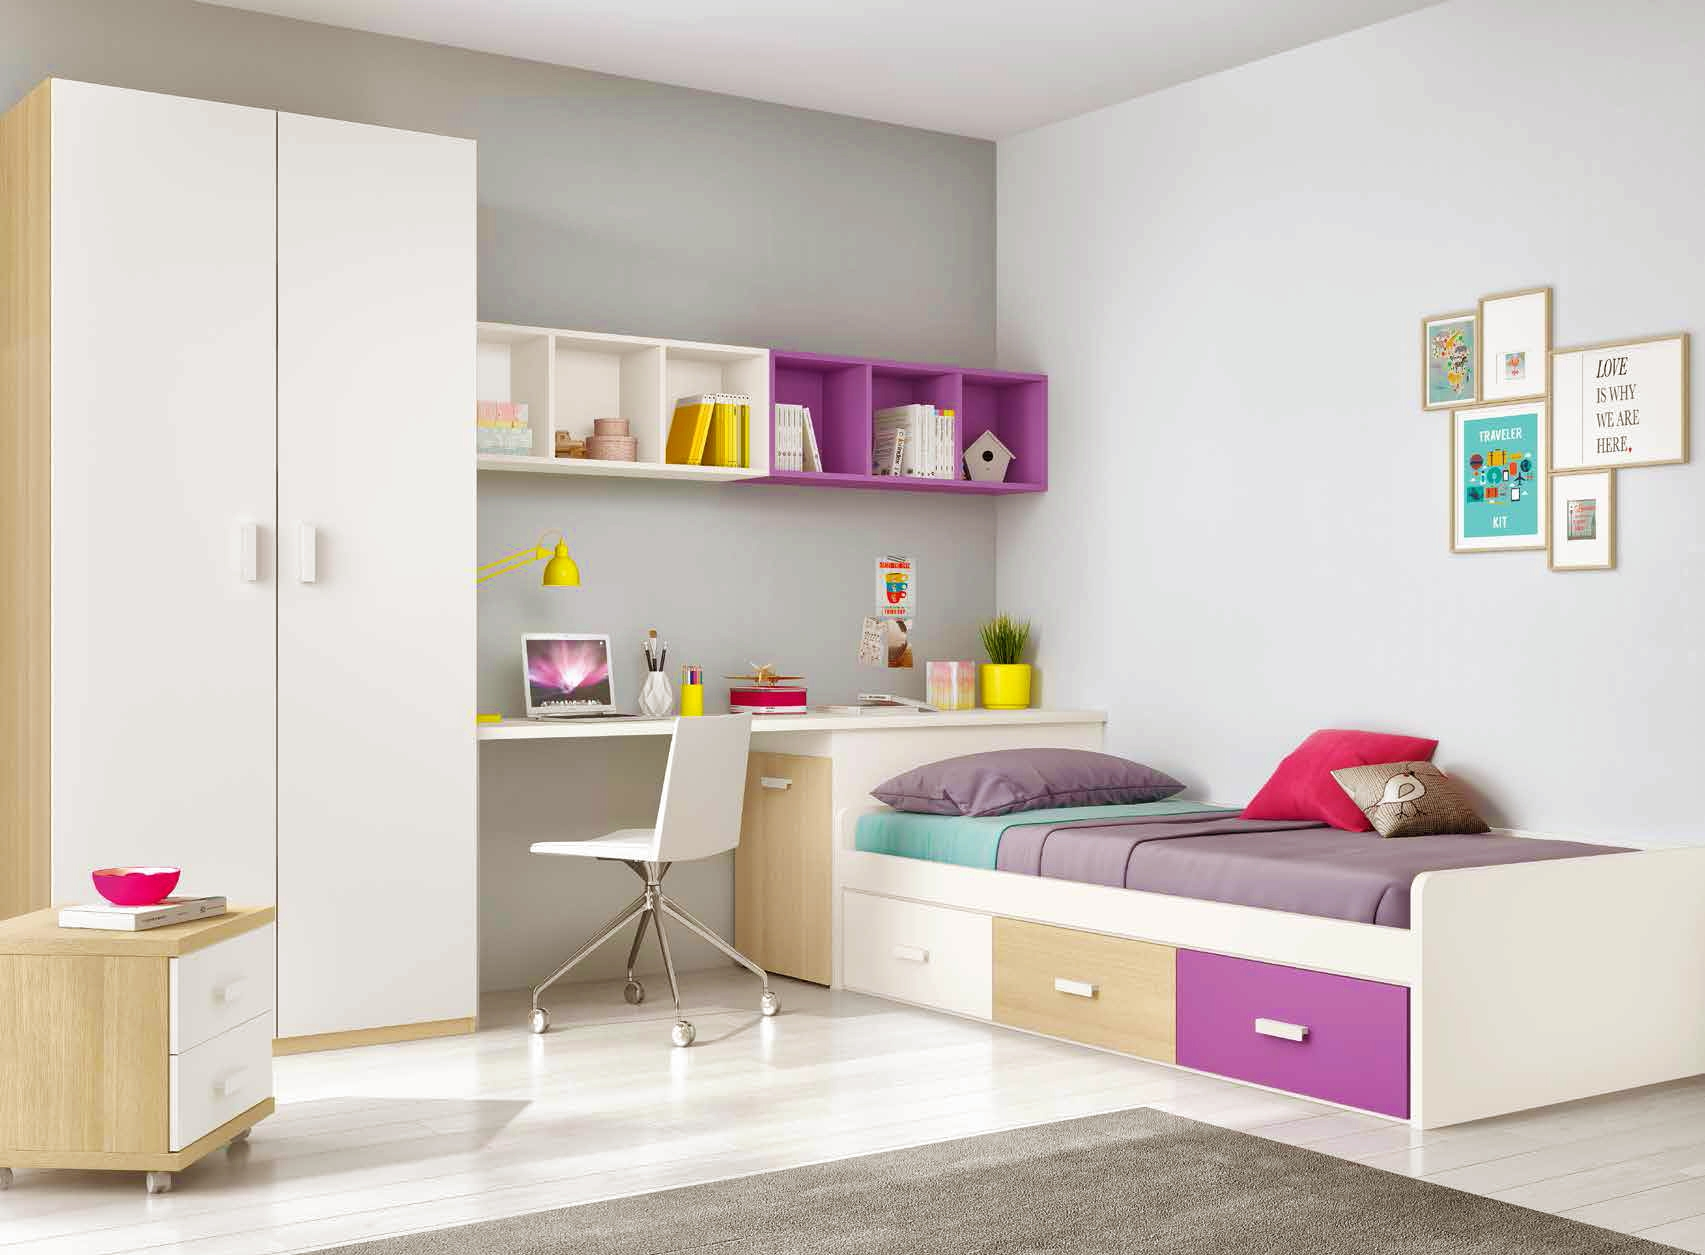 chambre ado design multicolore avec lit 3 coffres glicerio so nuit. Black Bedroom Furniture Sets. Home Design Ideas